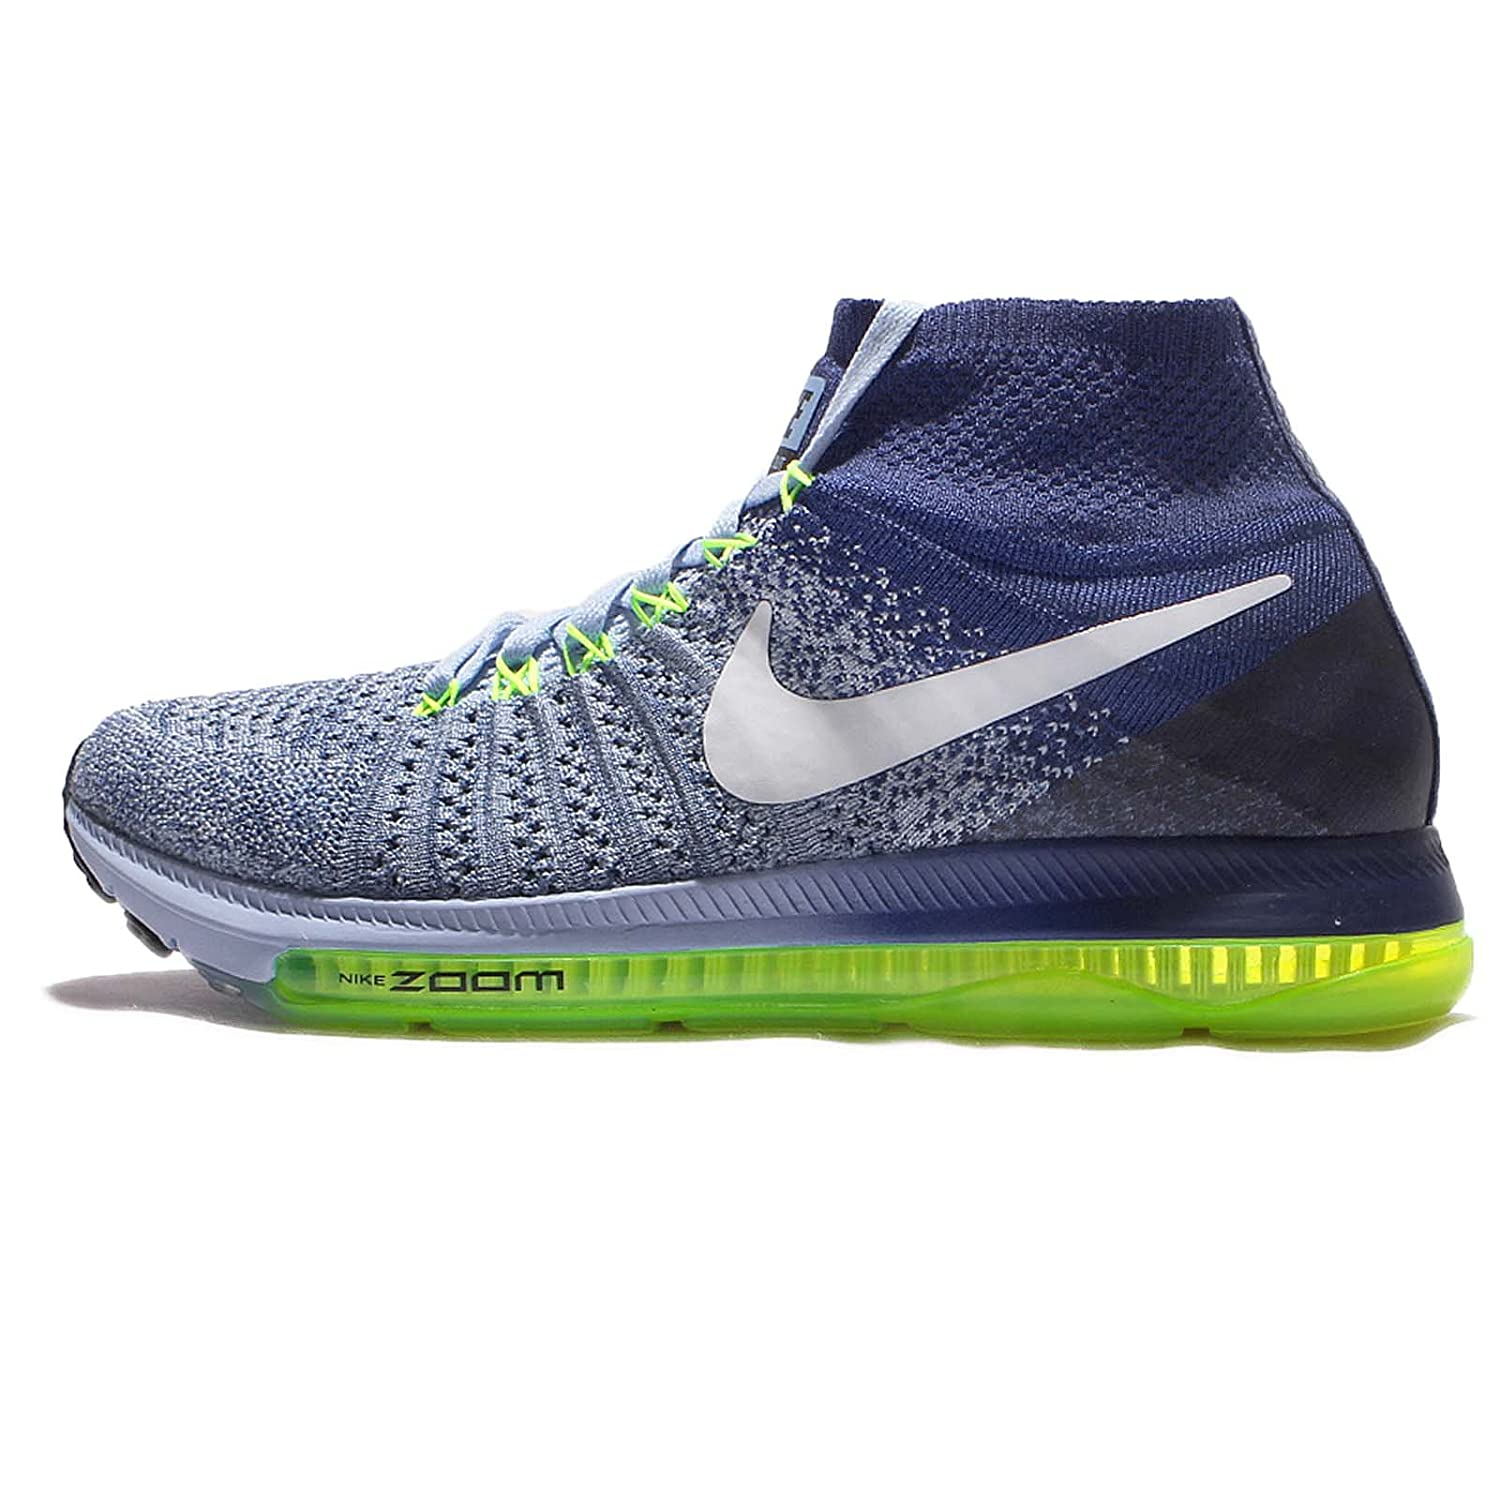 Nike Women's Zoom All Out Flyknit Running Shoes B01M1JEXCH 9 B(M) US|Bluecap/White-deep Royal Blue